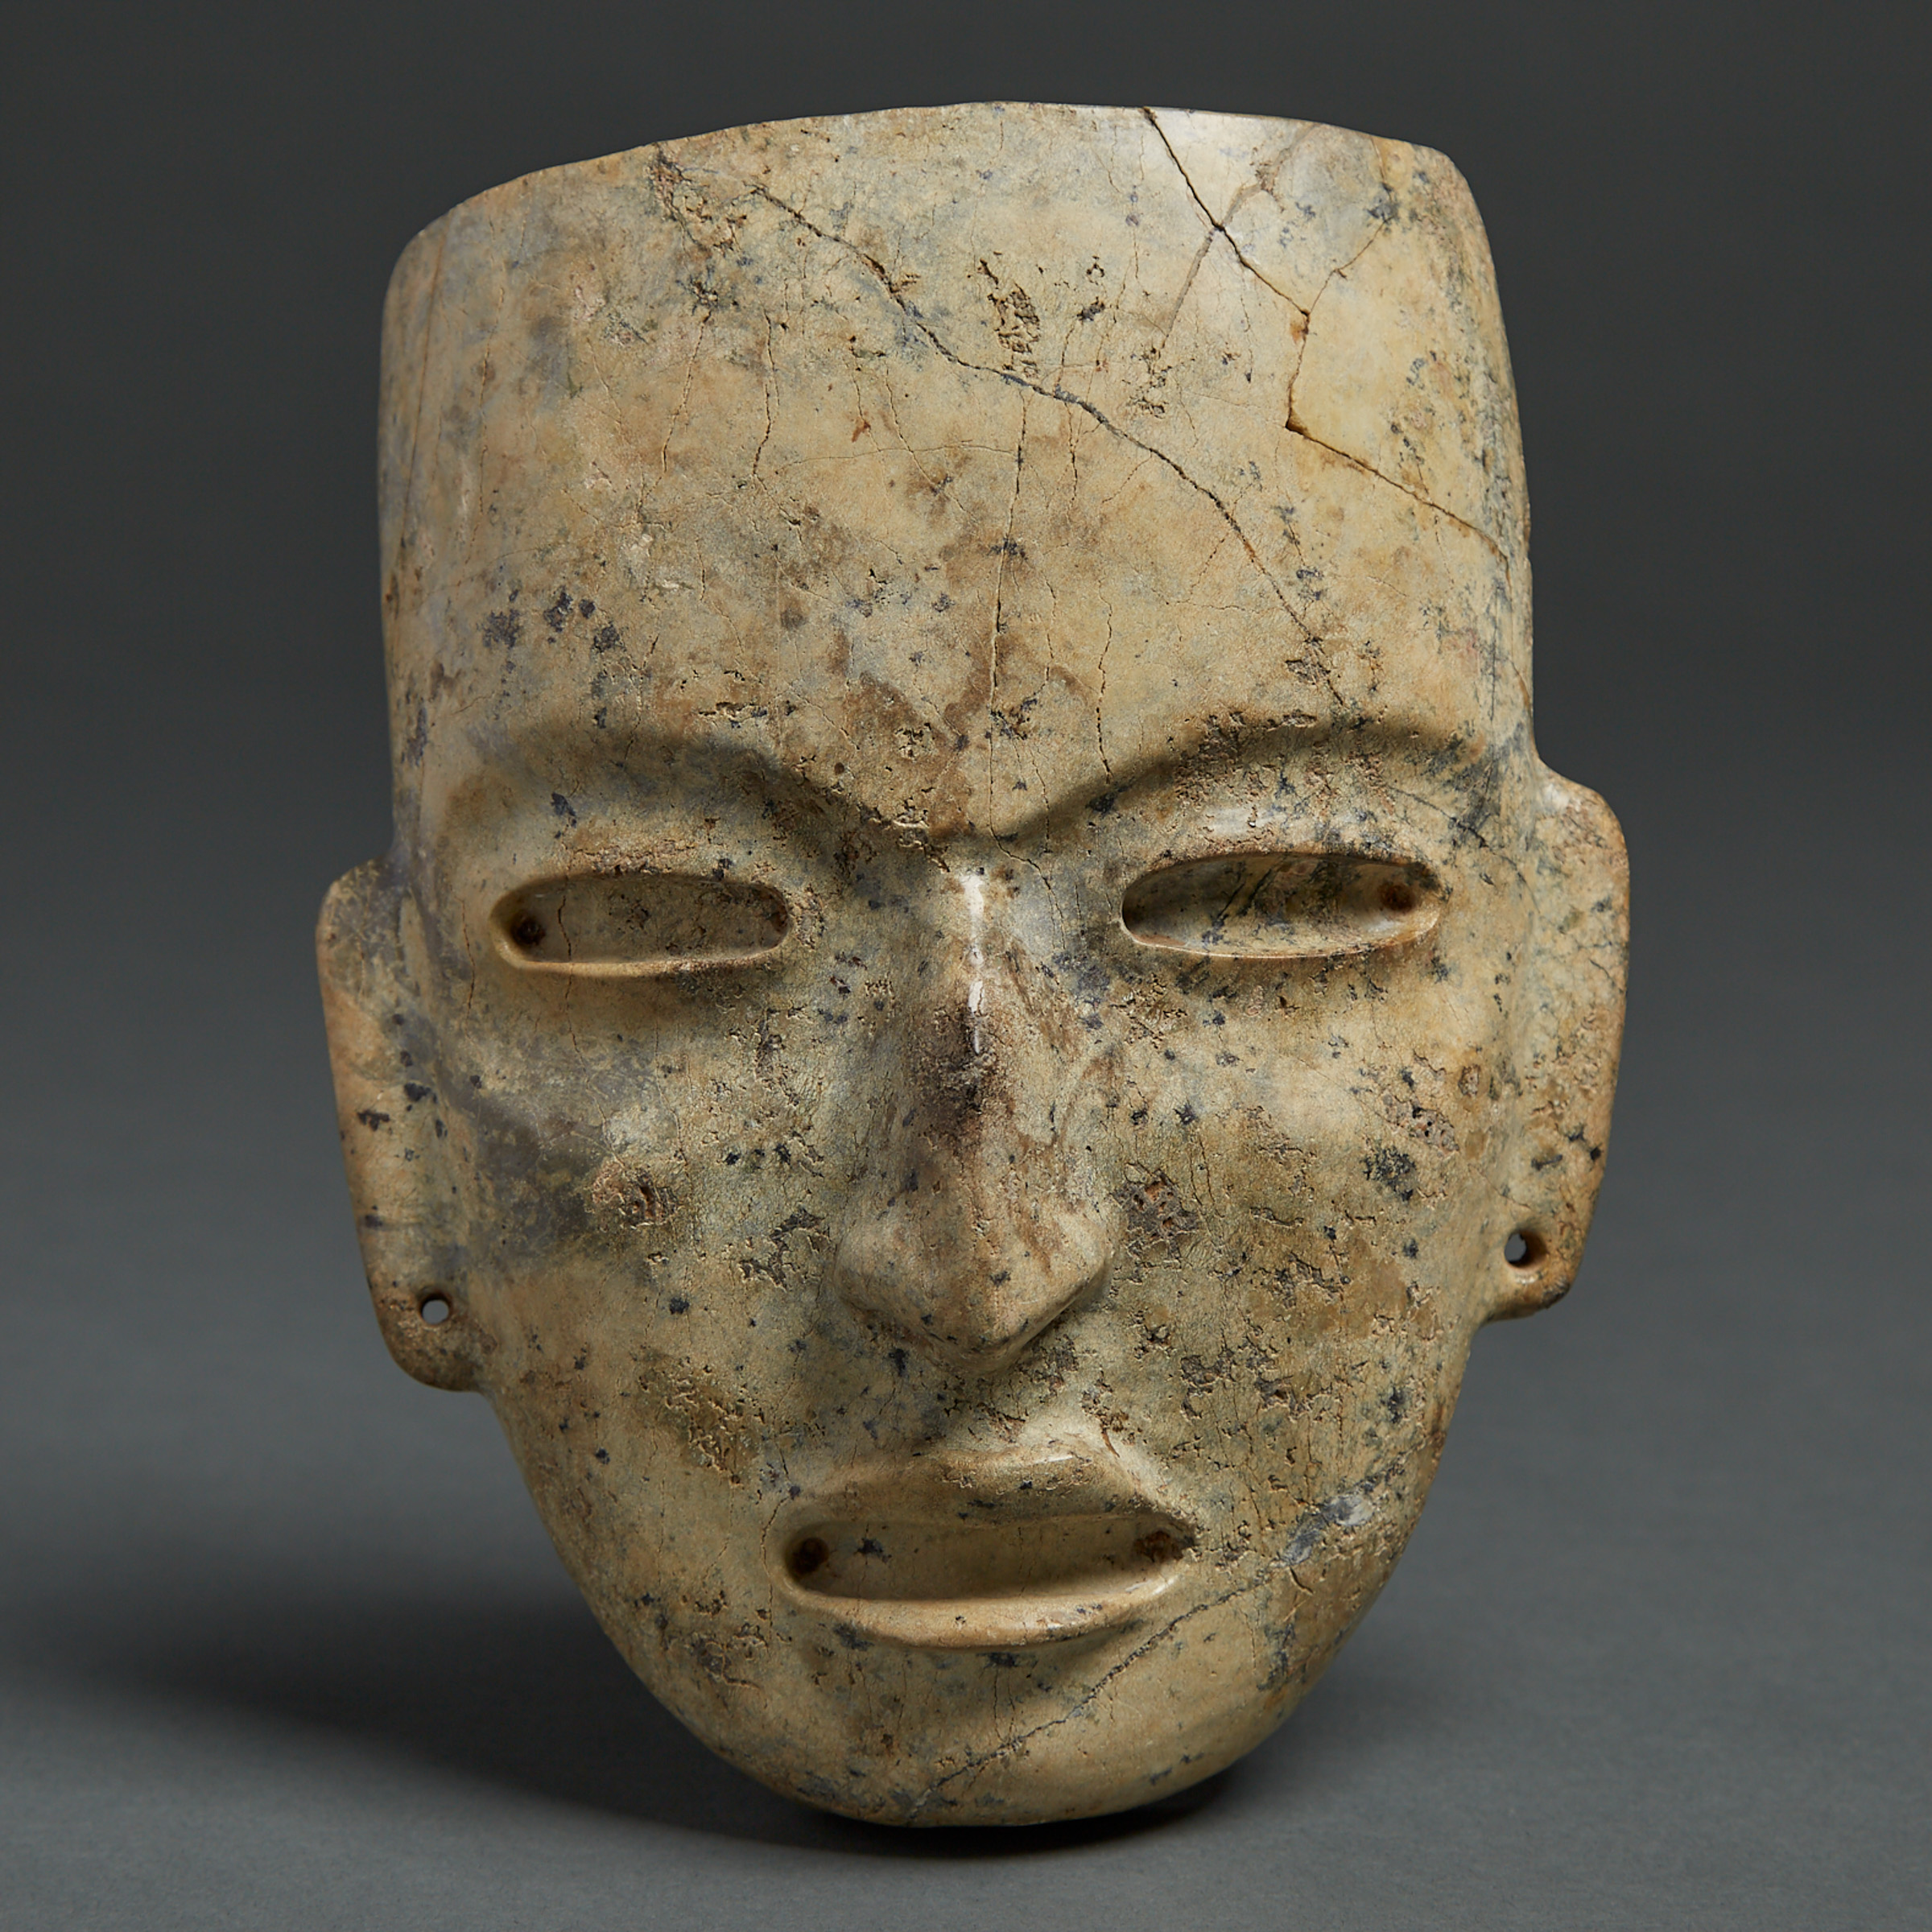 Teotihuacan Stone Mask, Valley of Mexico, Classic Period, 450-650 A.D.